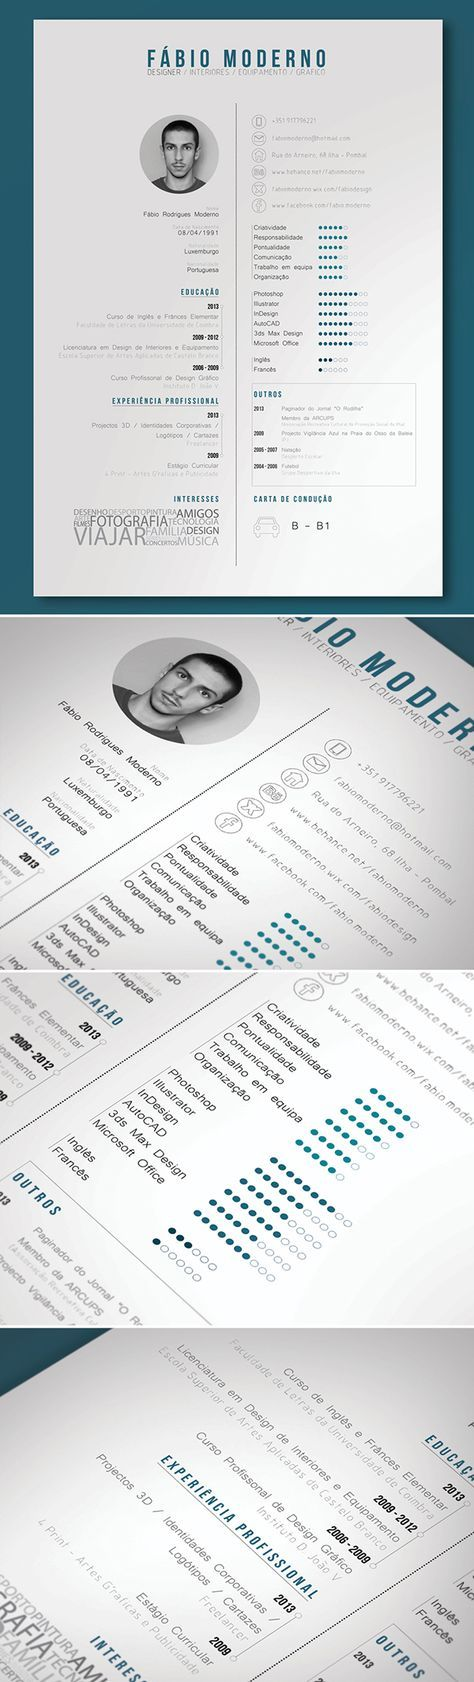 Cv Templates Pdf%0A Curriculum Vitae on Behance